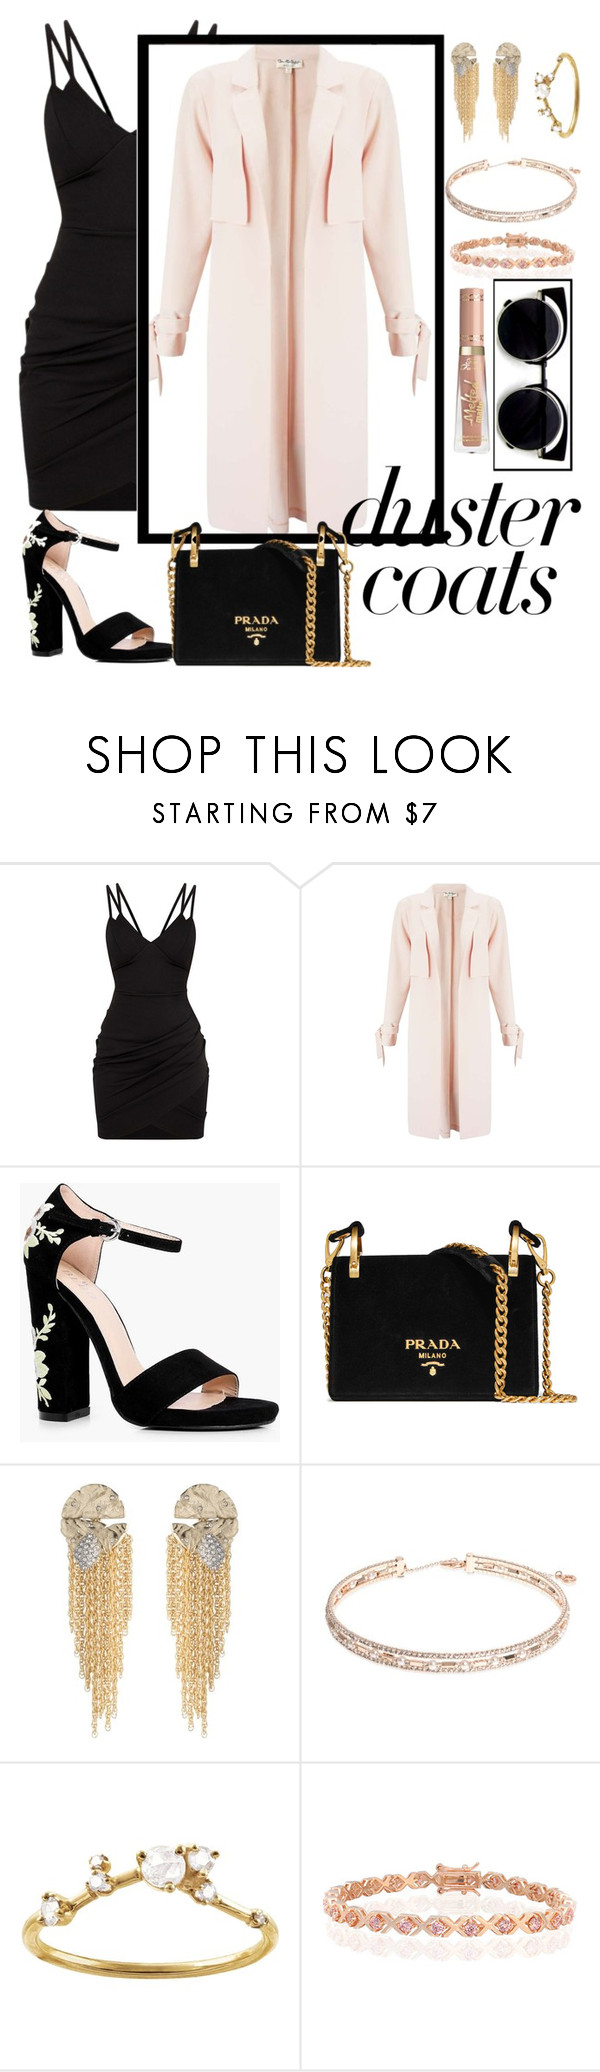 """""""Duster coats"""" by boneca-costa ❤ liked on Polyvore featuring Miss Selfridge, Boohoo, Prada, Alexis Bittar, Anne Klein, WWAKE and Bling Jewelry"""